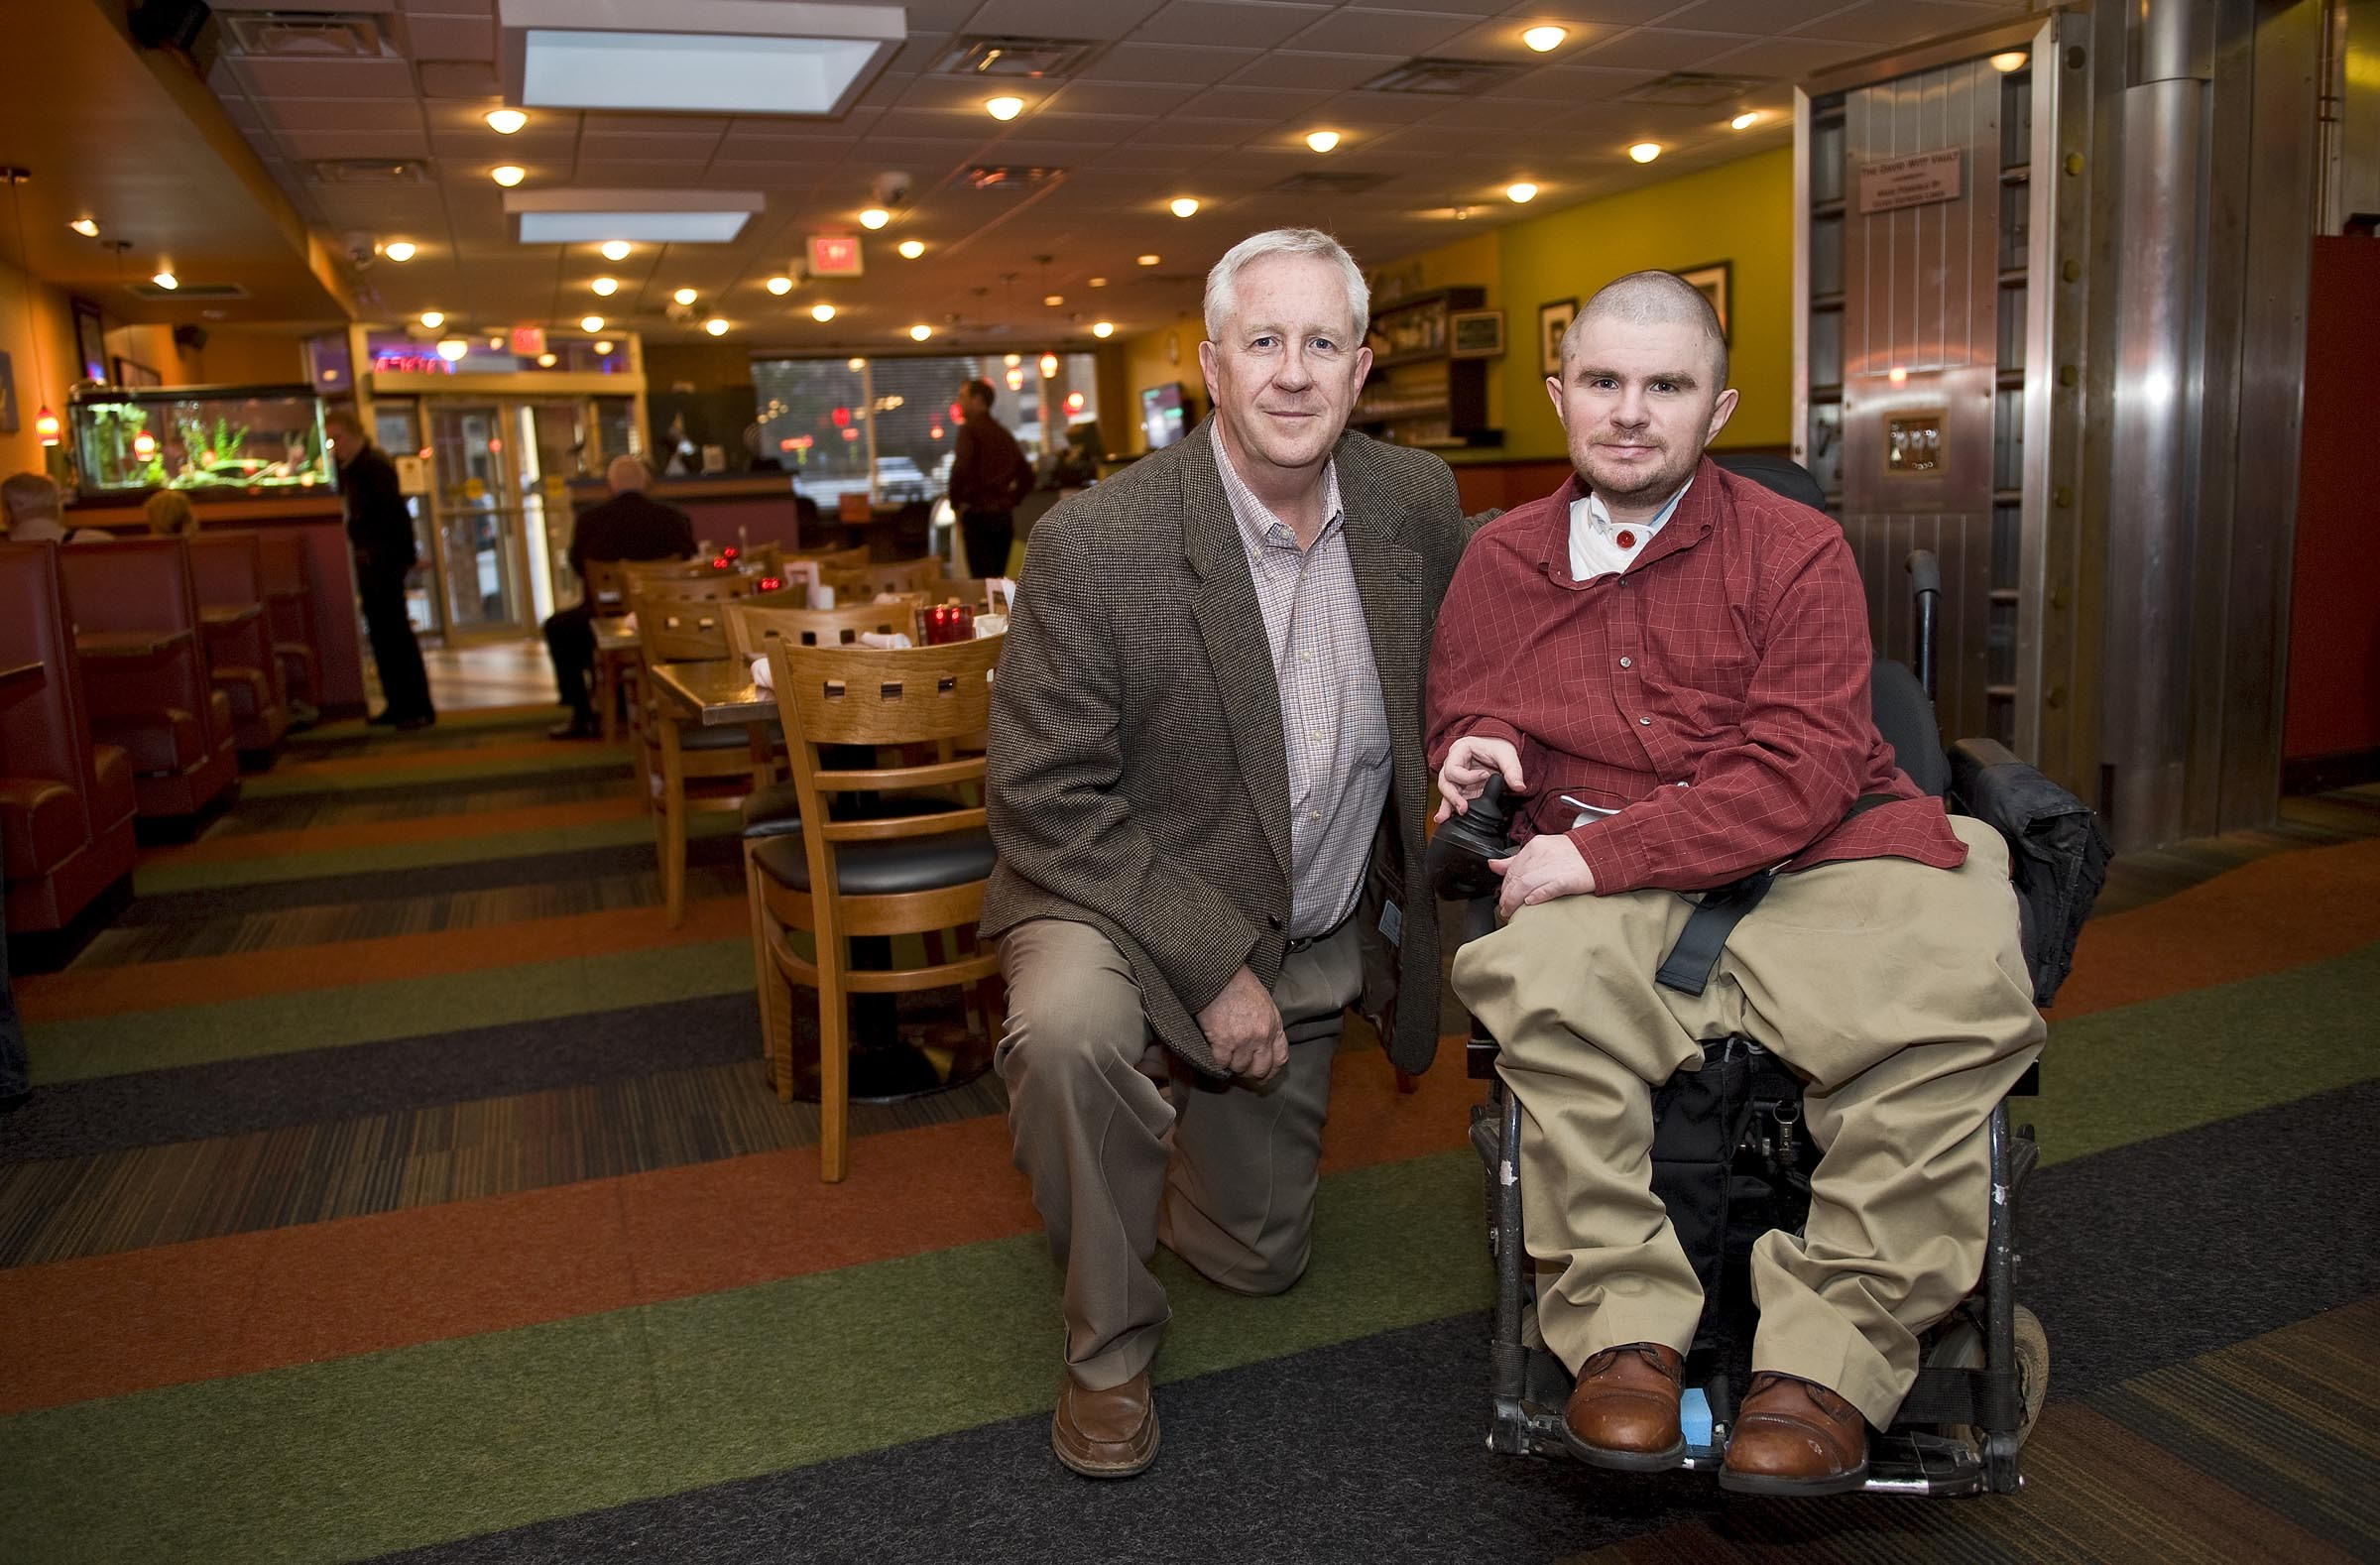 Co-owner of the Positive Vibe Café, Garth Larcen (pictured with his son, Max), started one of the first restaurants in the country to feature a training program for the disabled. - ASH DANIEL